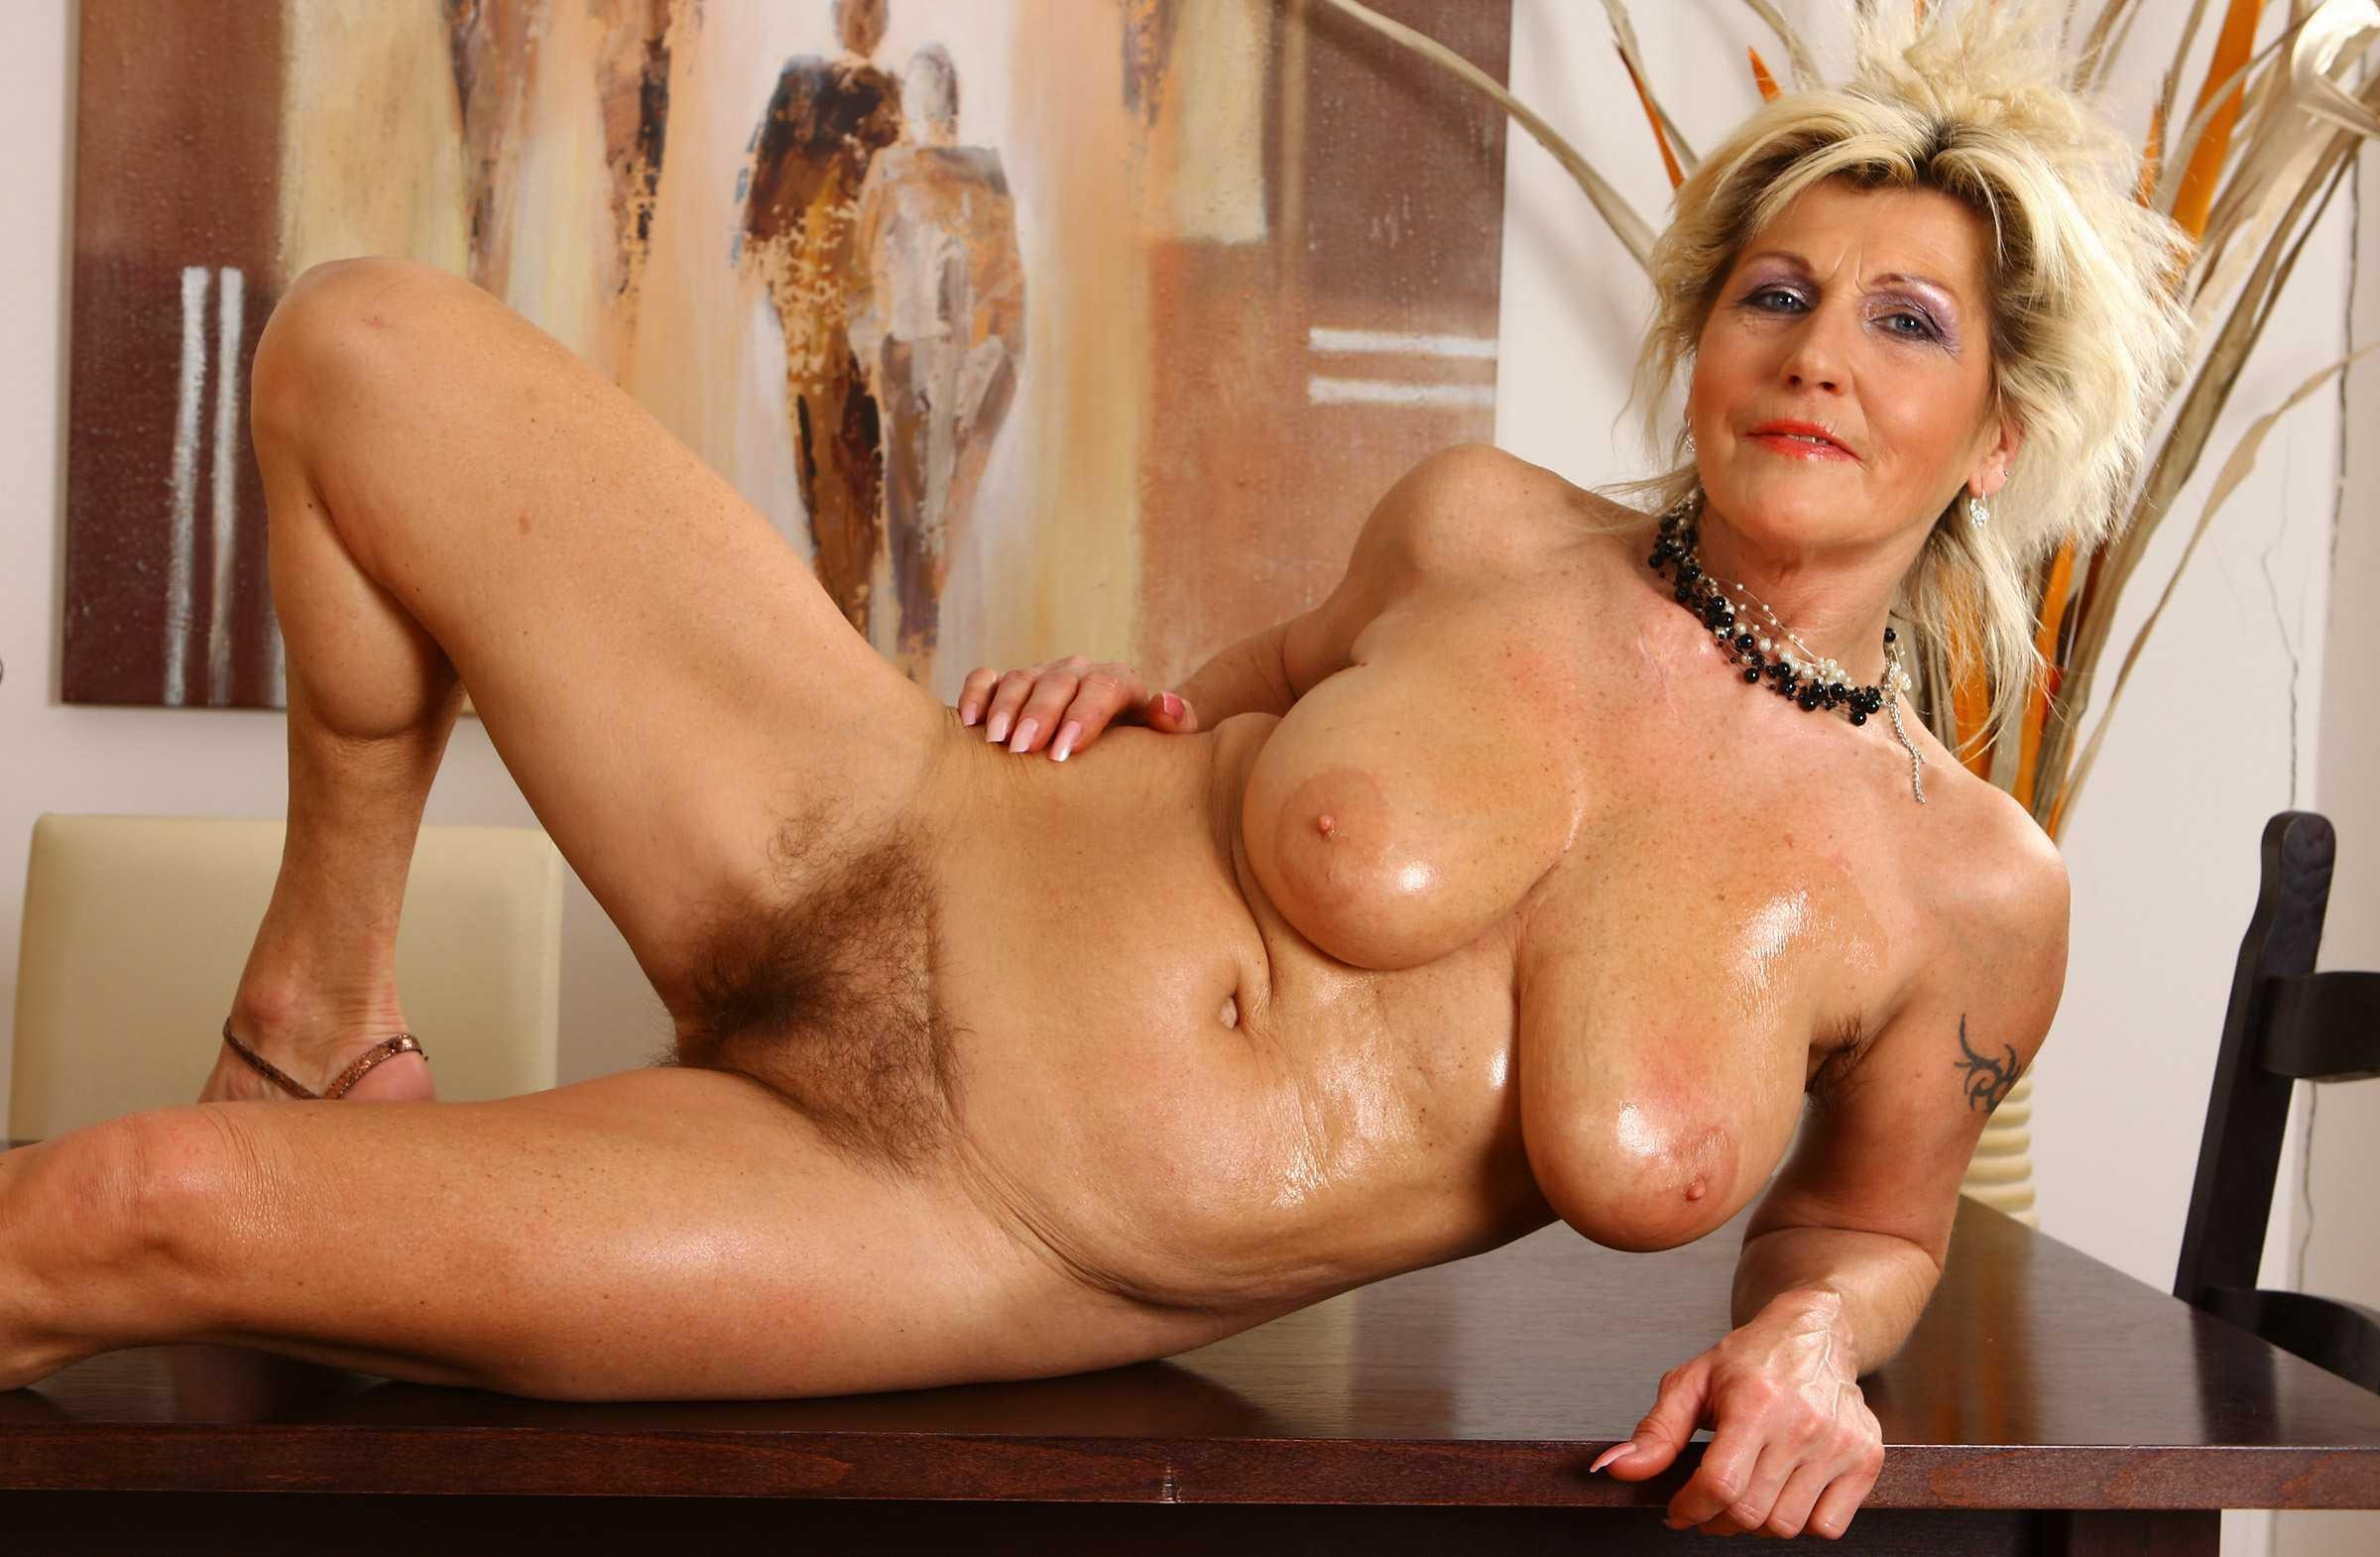 Barbra hershey sex